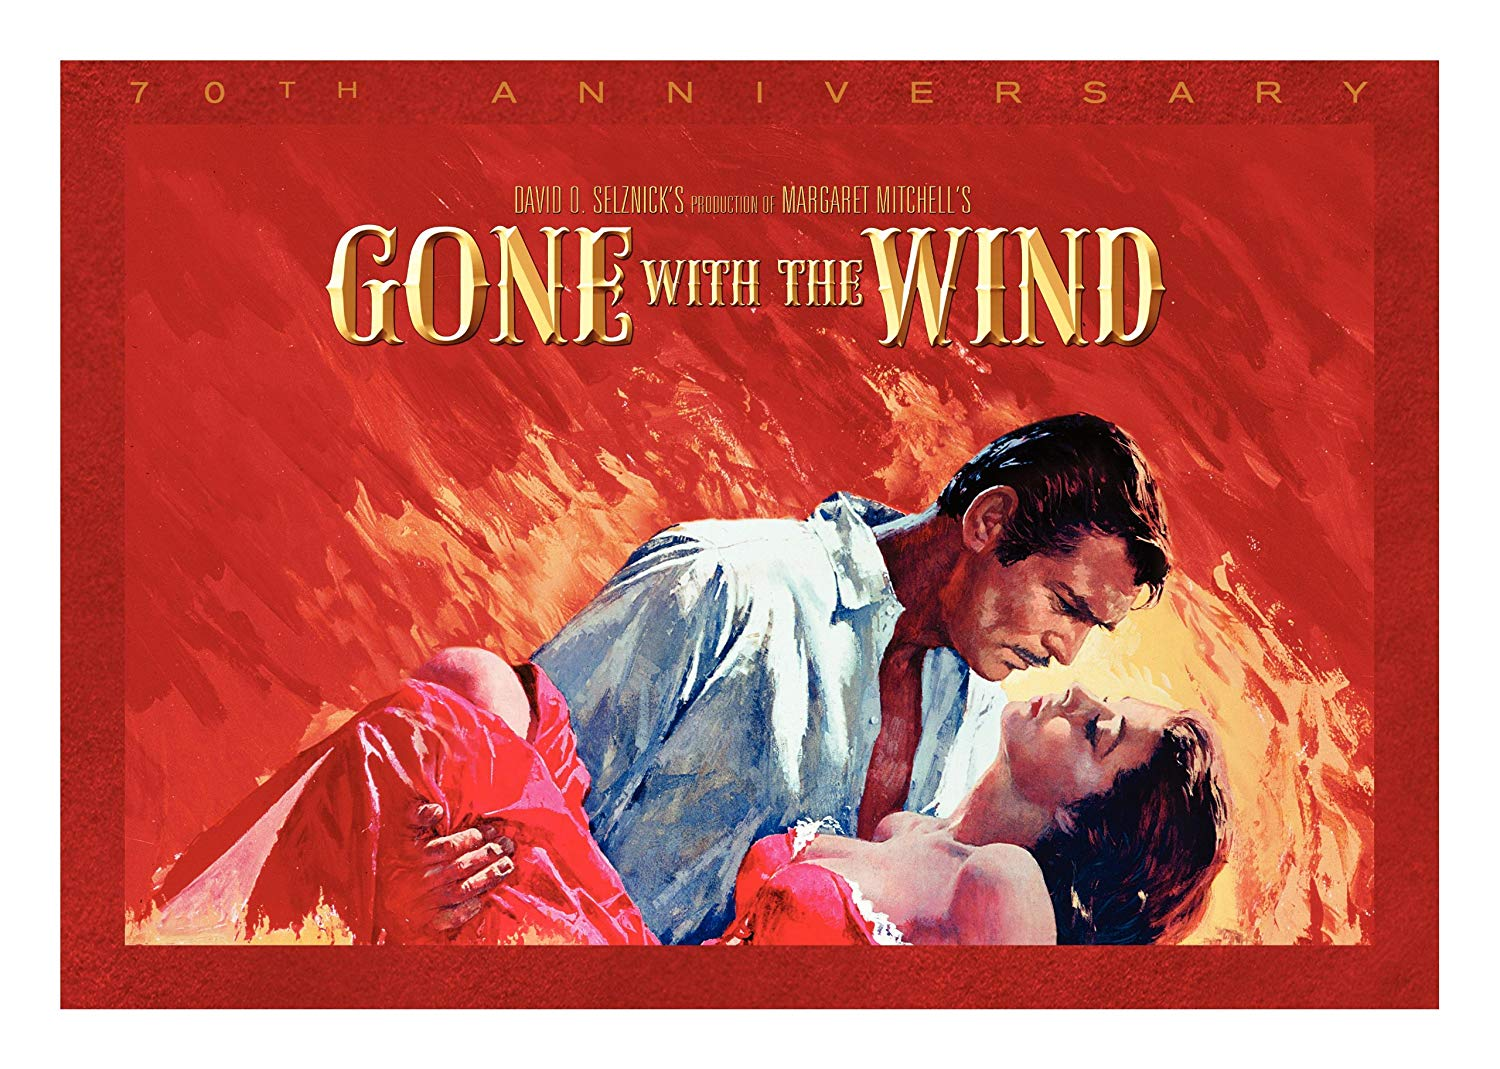 91m0sMm8KSL. SL1500  Gone with the Wind 70th Anniversary Ultimate Collector's Edition